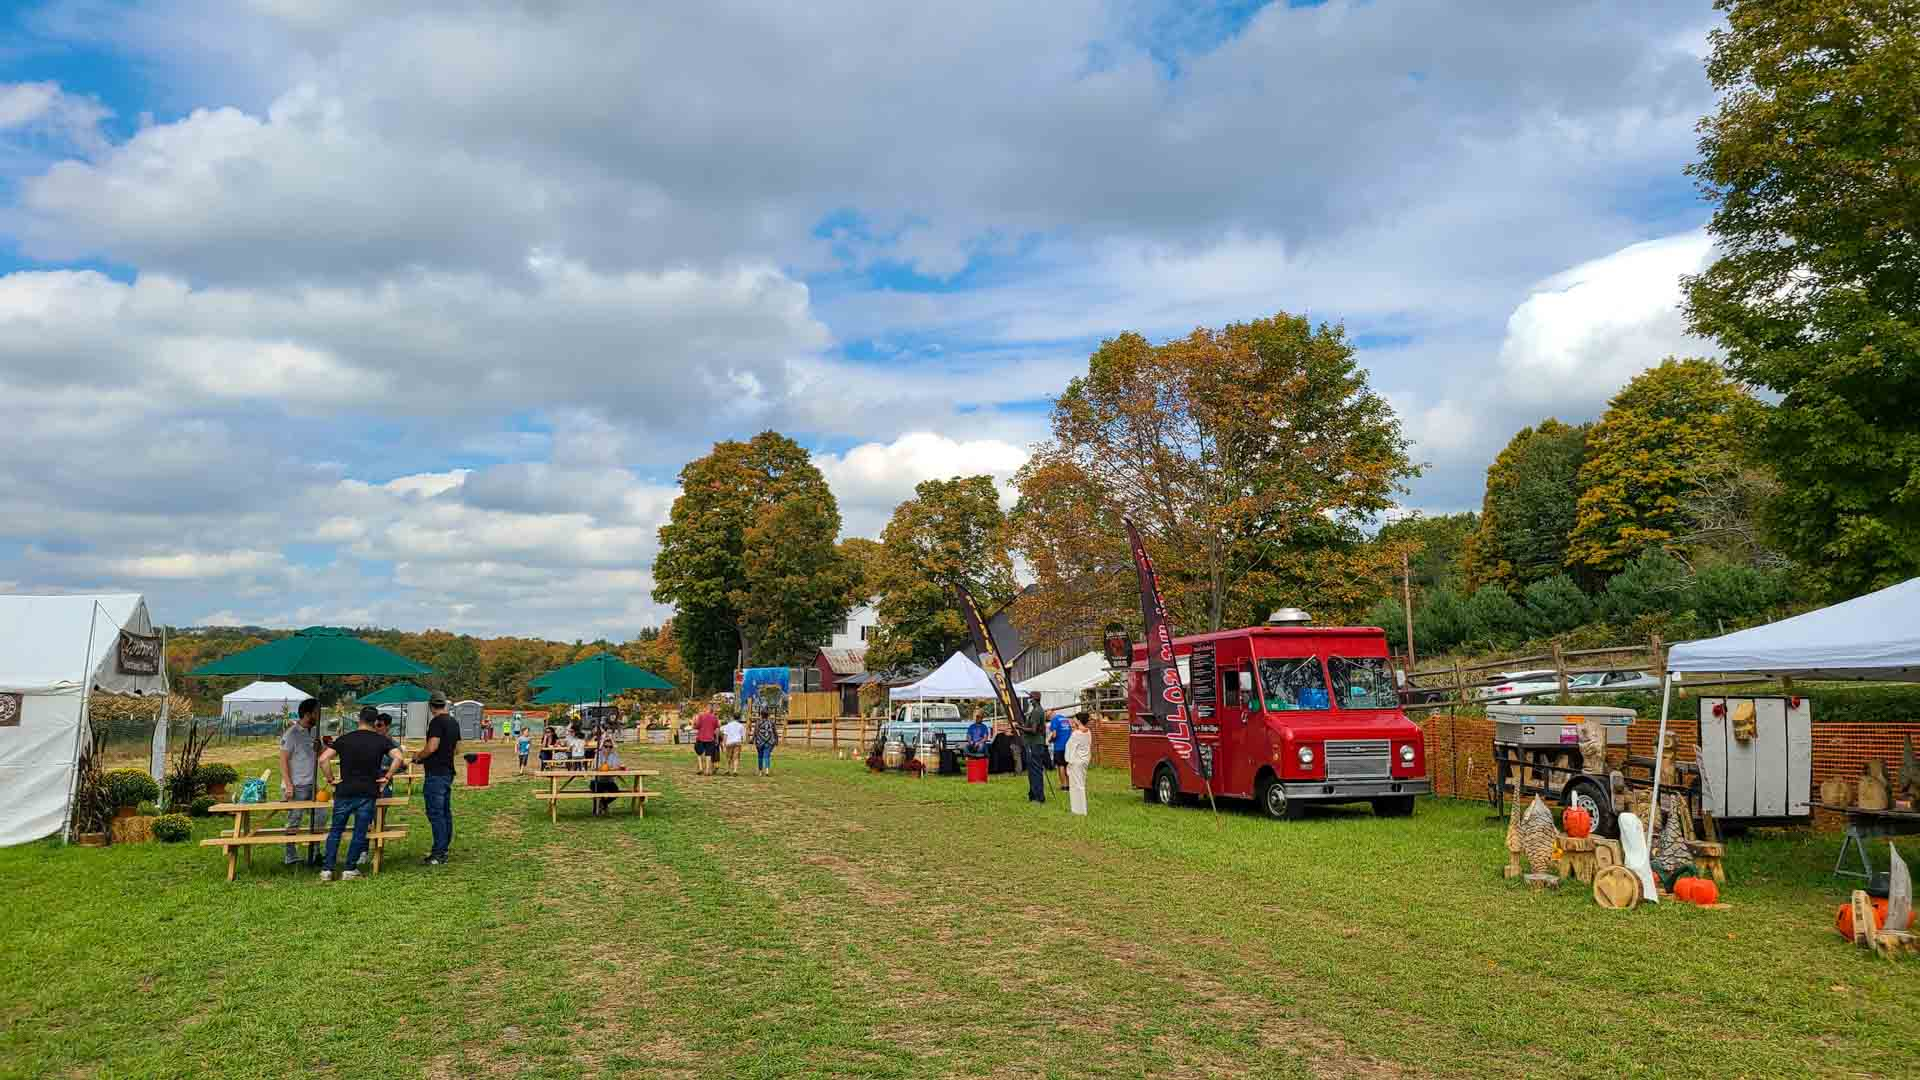 Zona de picnic en The Farm, Woodbury, Connecticut